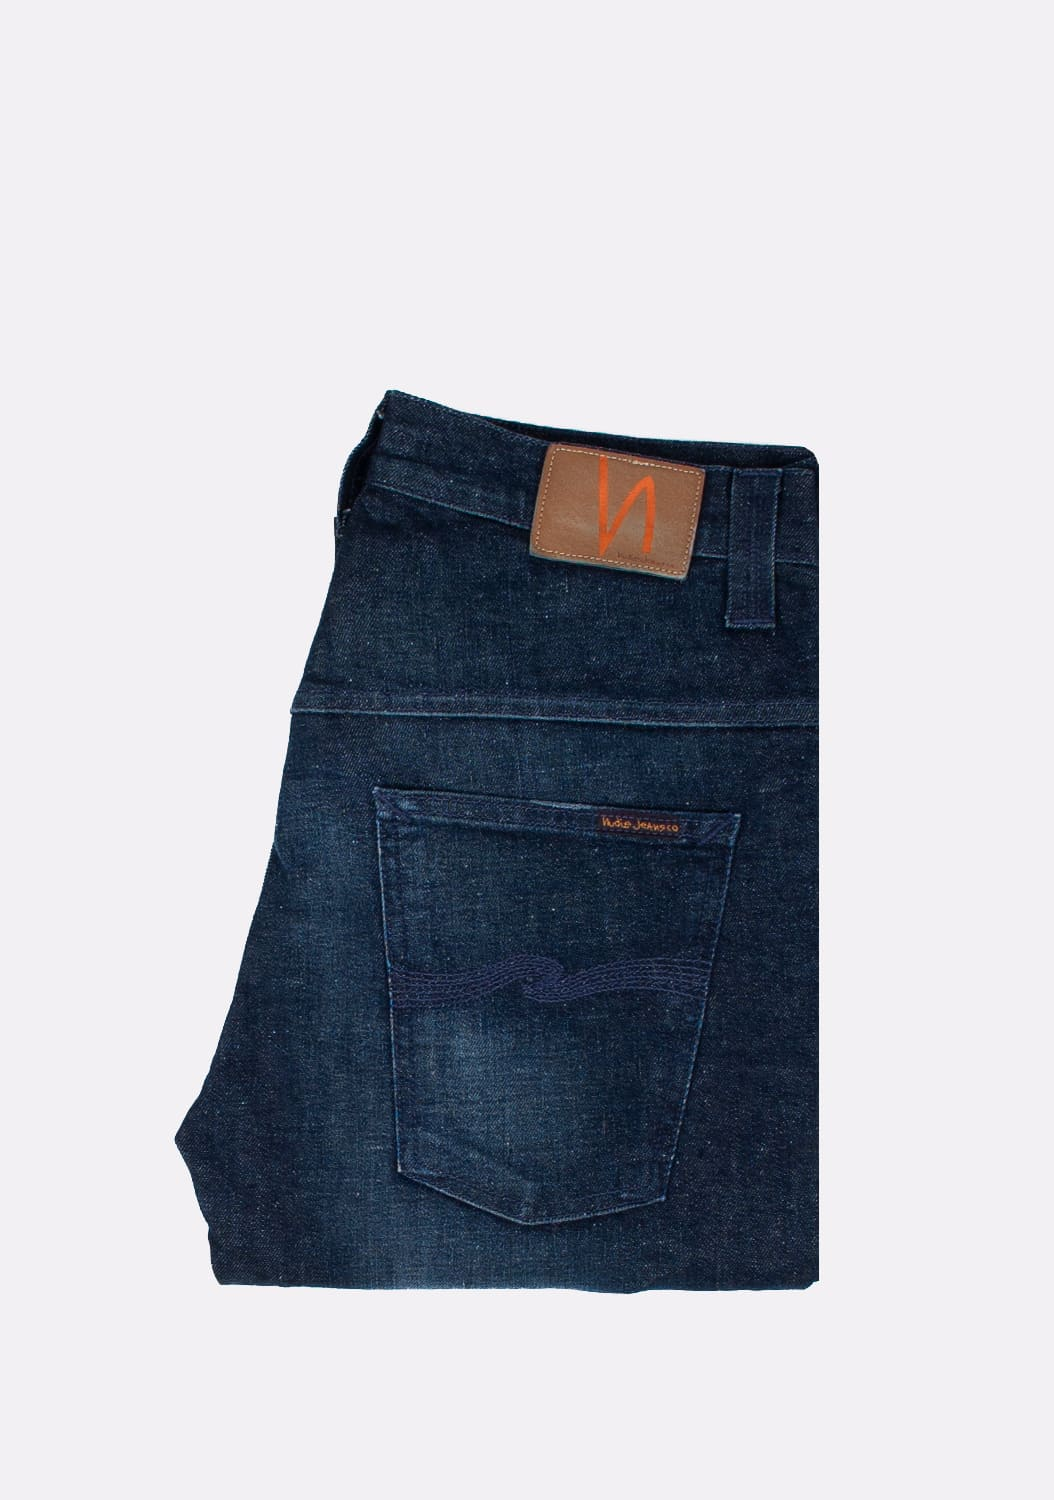 Nudie-Jeans-Tape-Ted-Org.-Nightcrawler-dzinsai-dydis-34-32 (1)